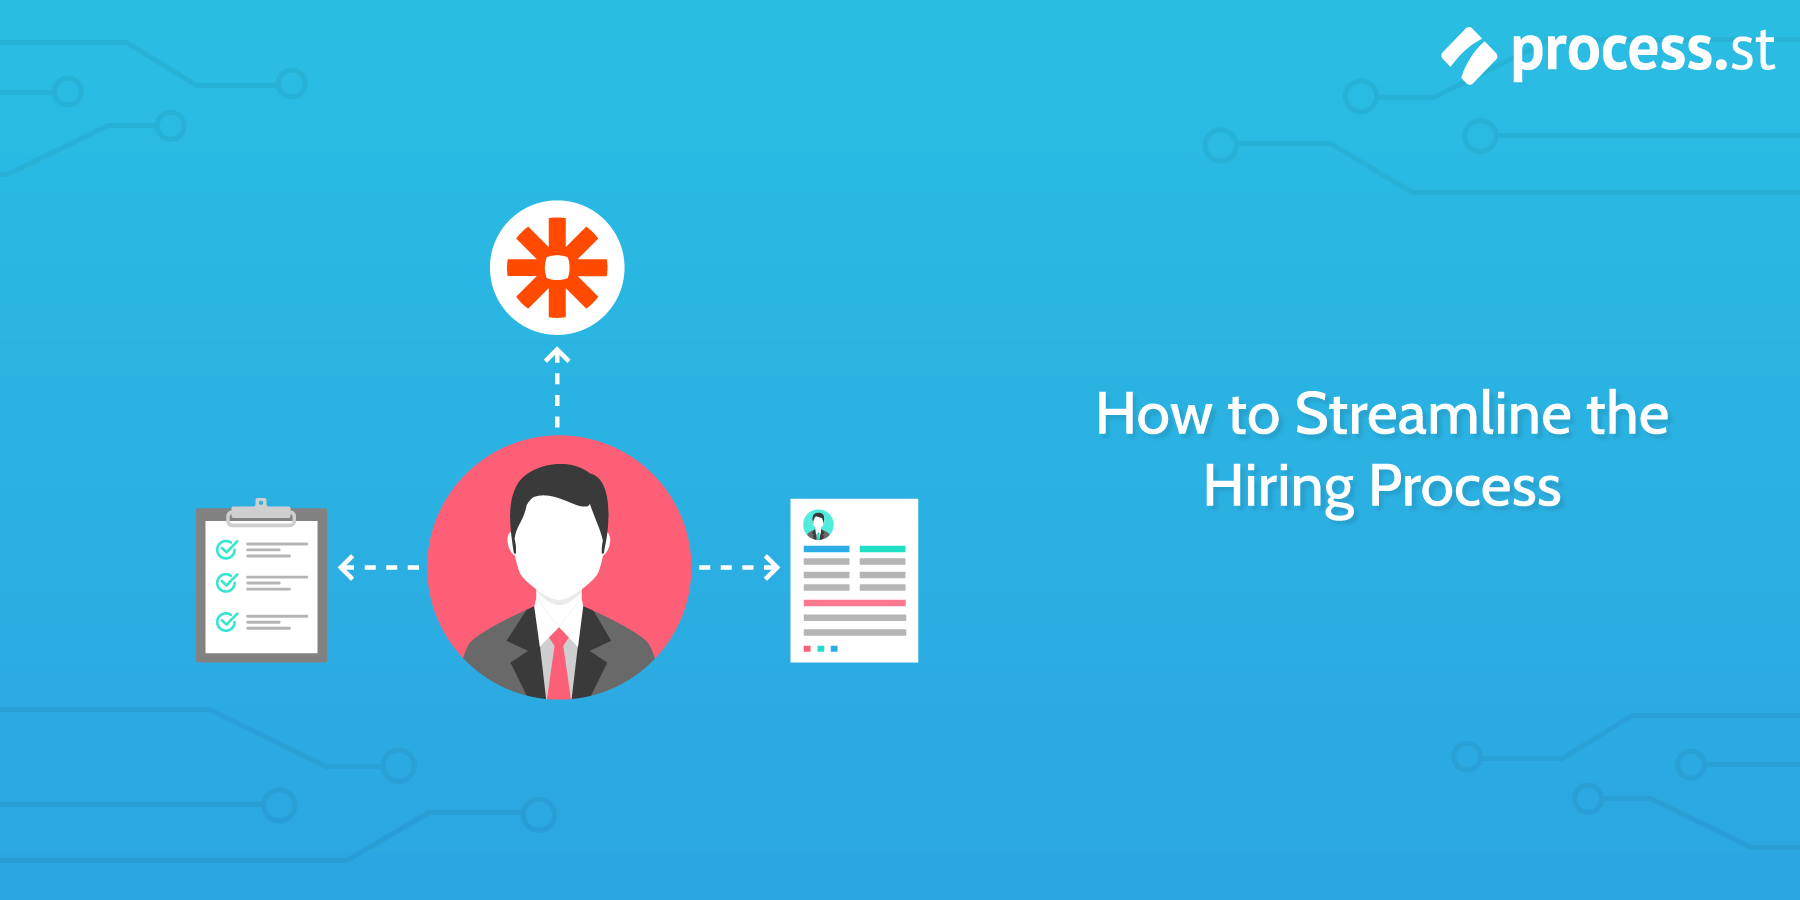 How to Streamline the Hiring Process